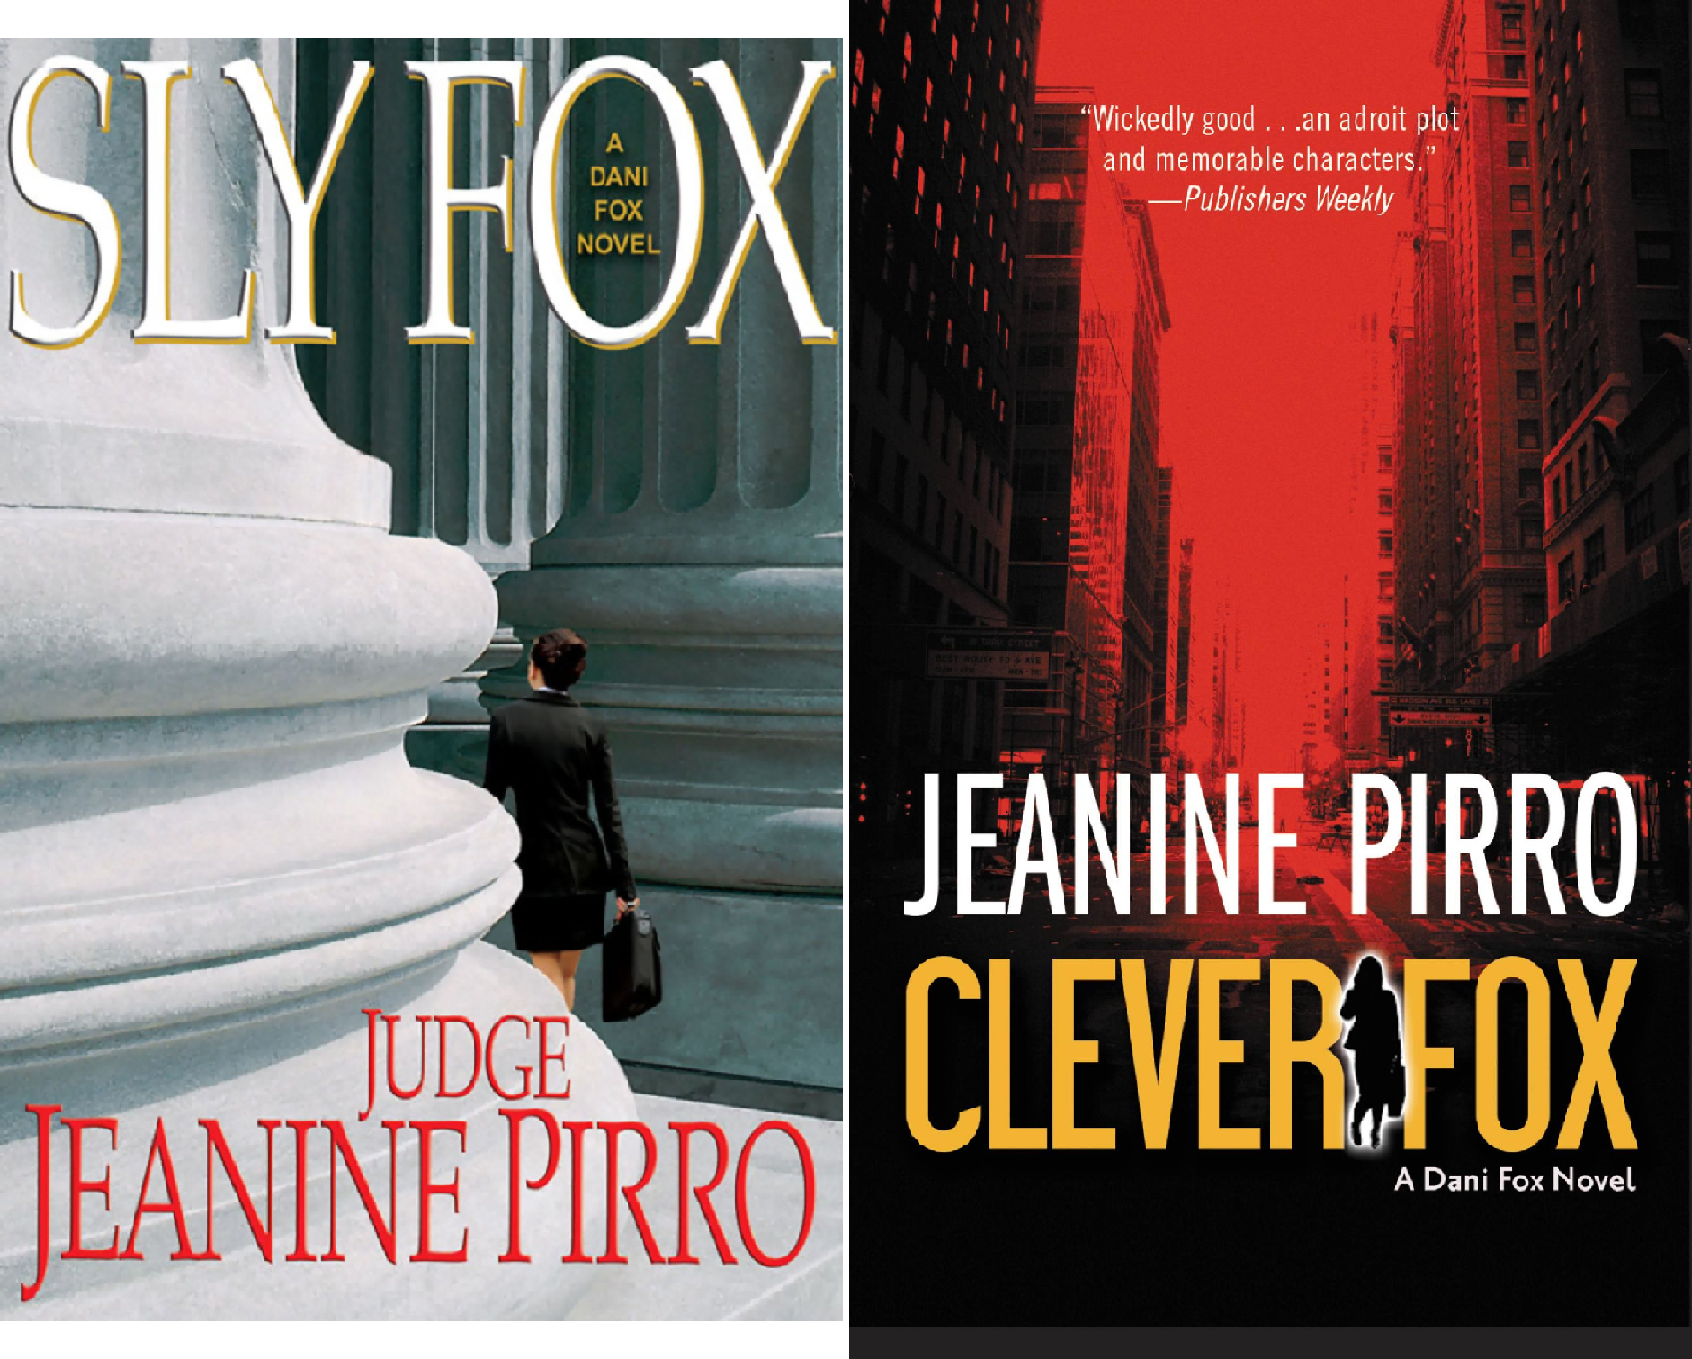 Book cover from Dani Fox (2 Book Series) by Jeanine Pirro